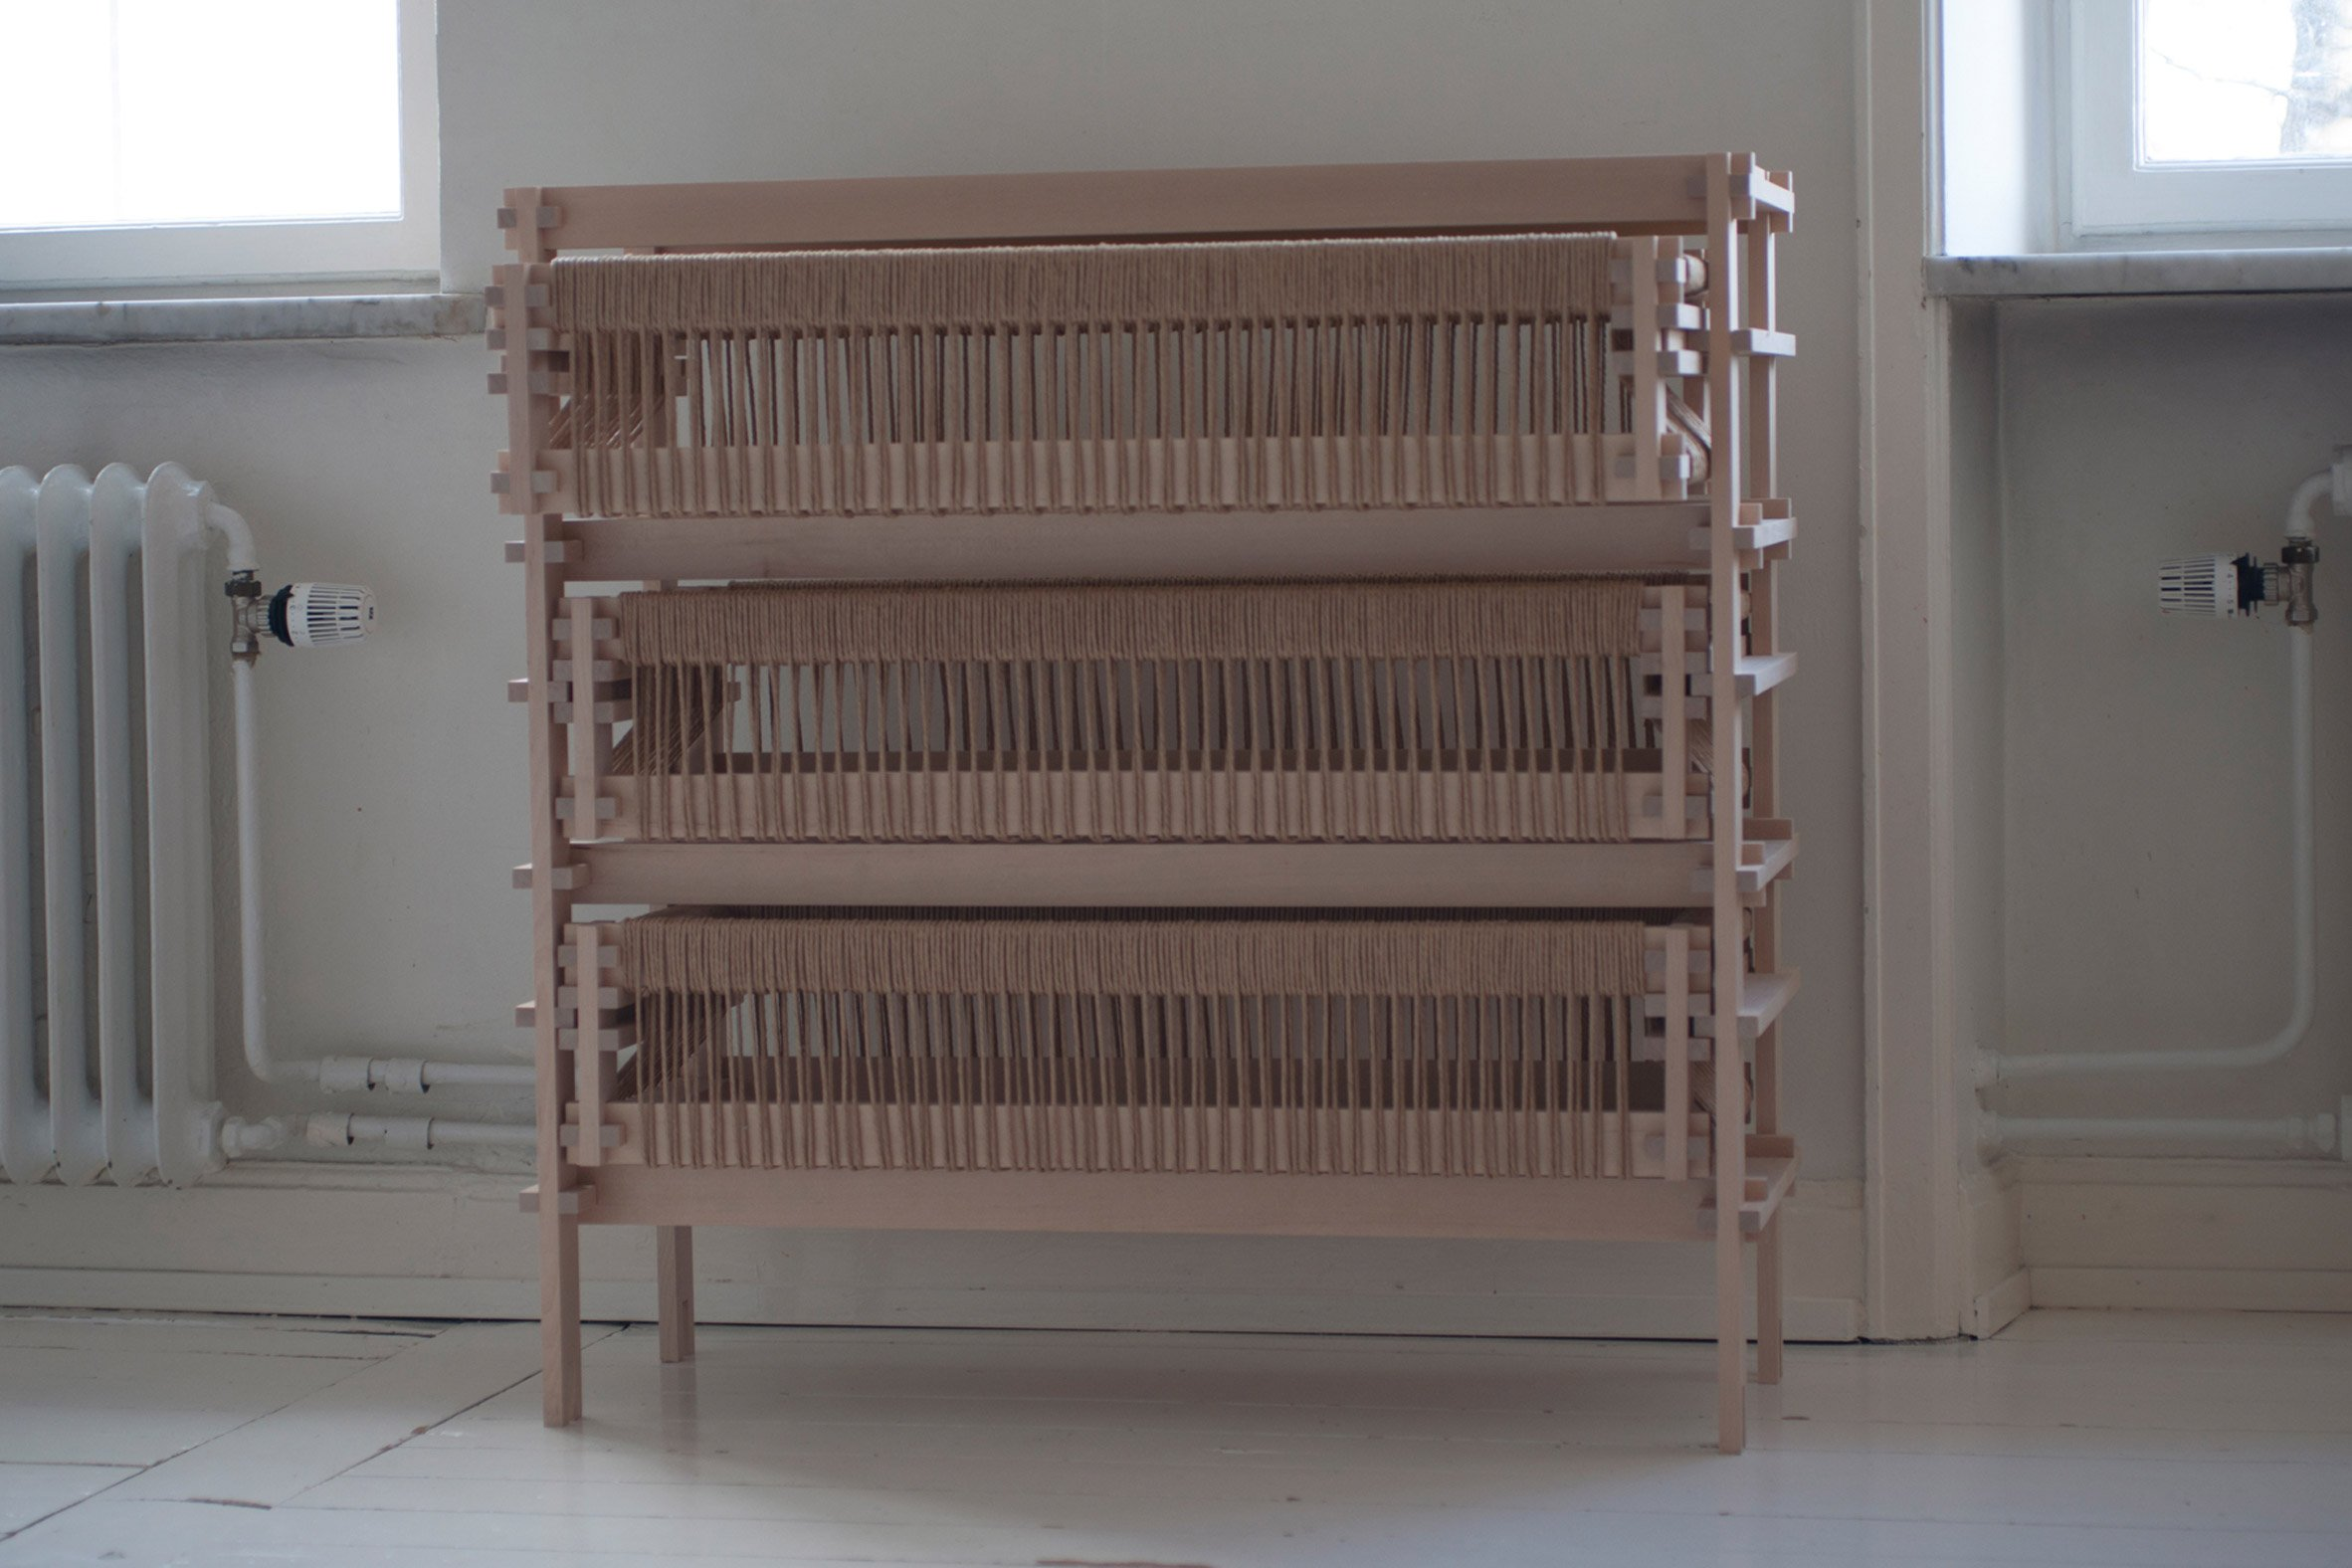 Dresser made from sawmill waste and paper cord